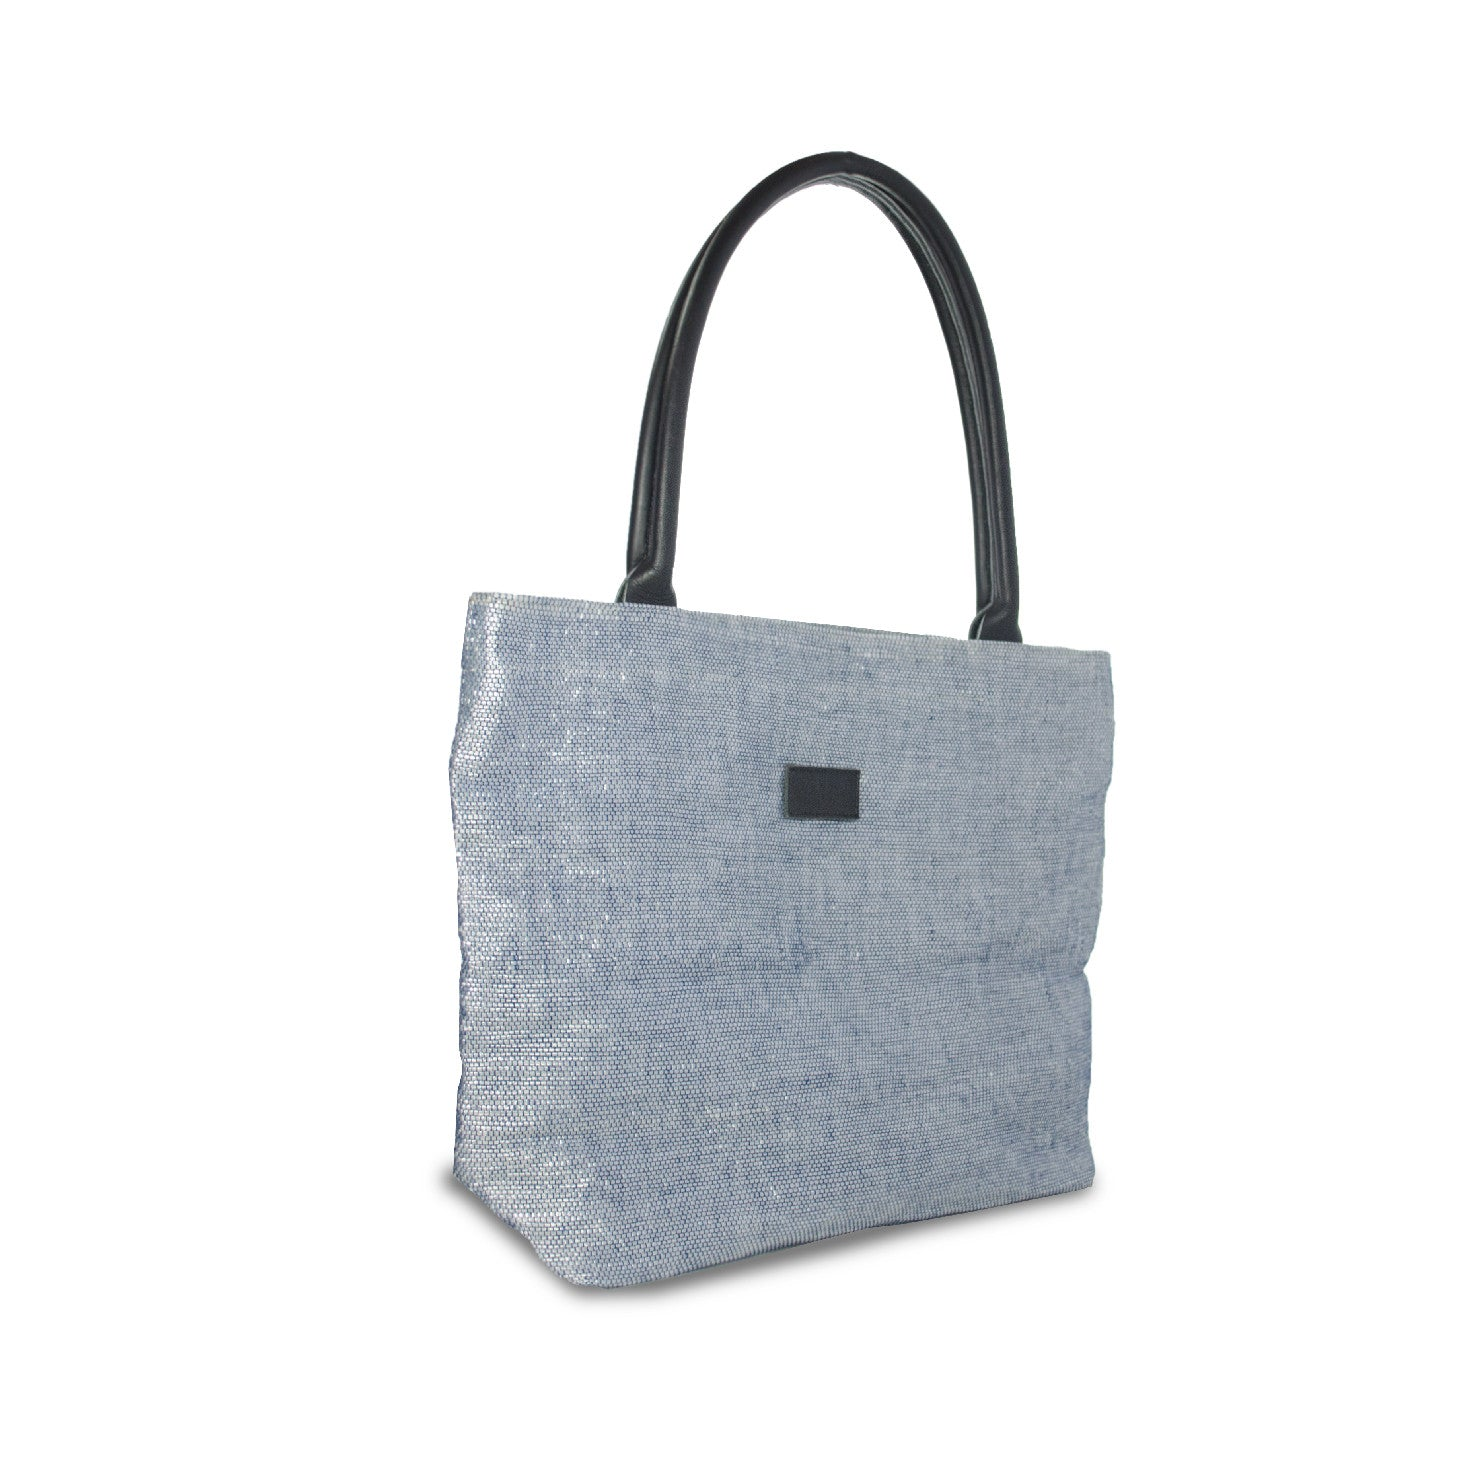 Tote Blue & Silver / Black Leather